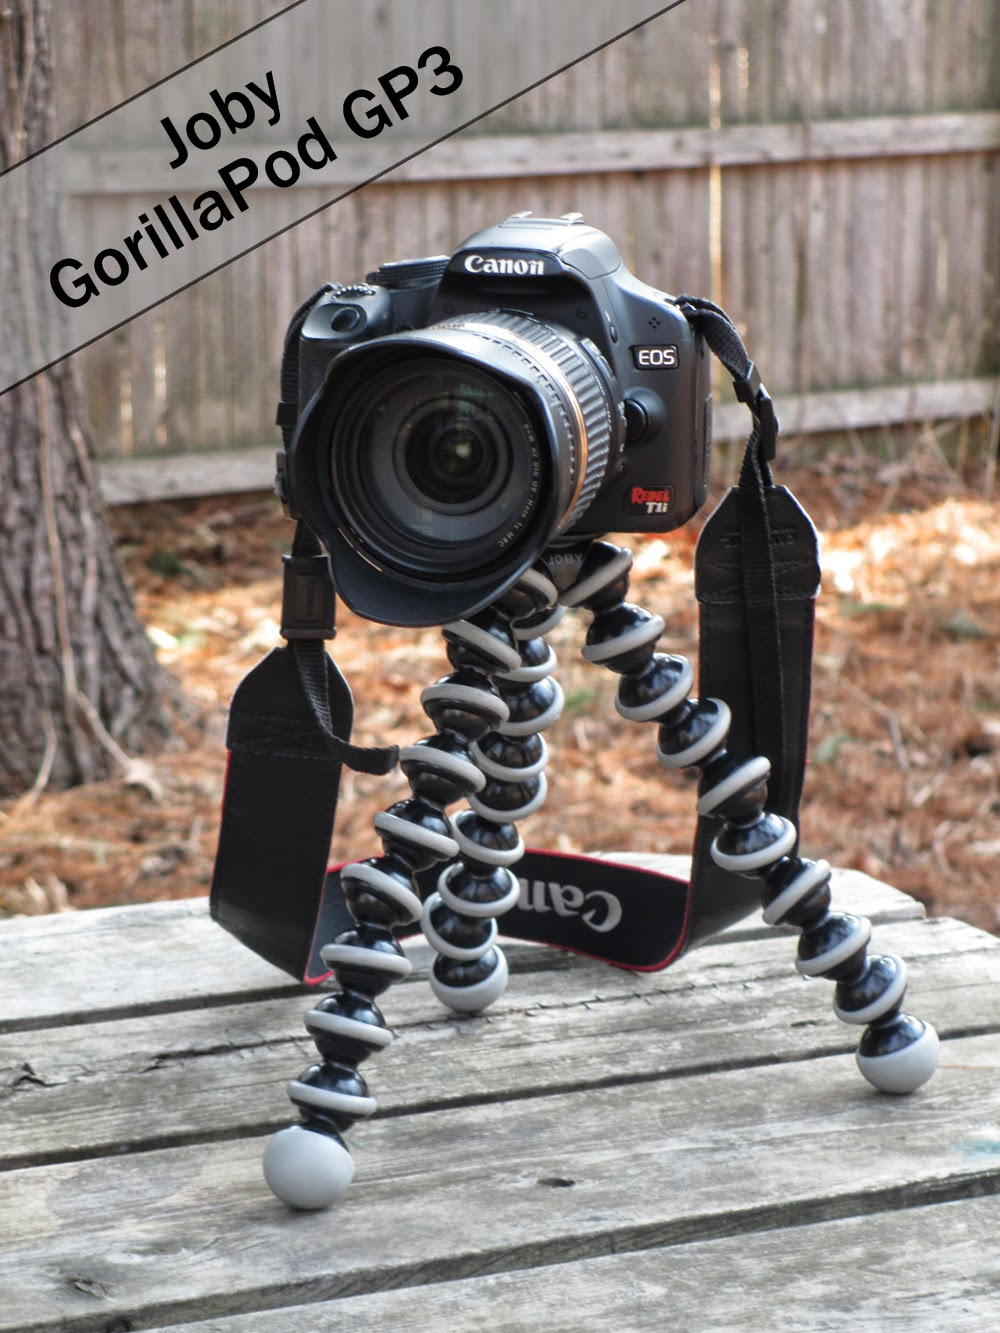 Joby GorillaPod GP3 Tripod Review | Boost Your Photography